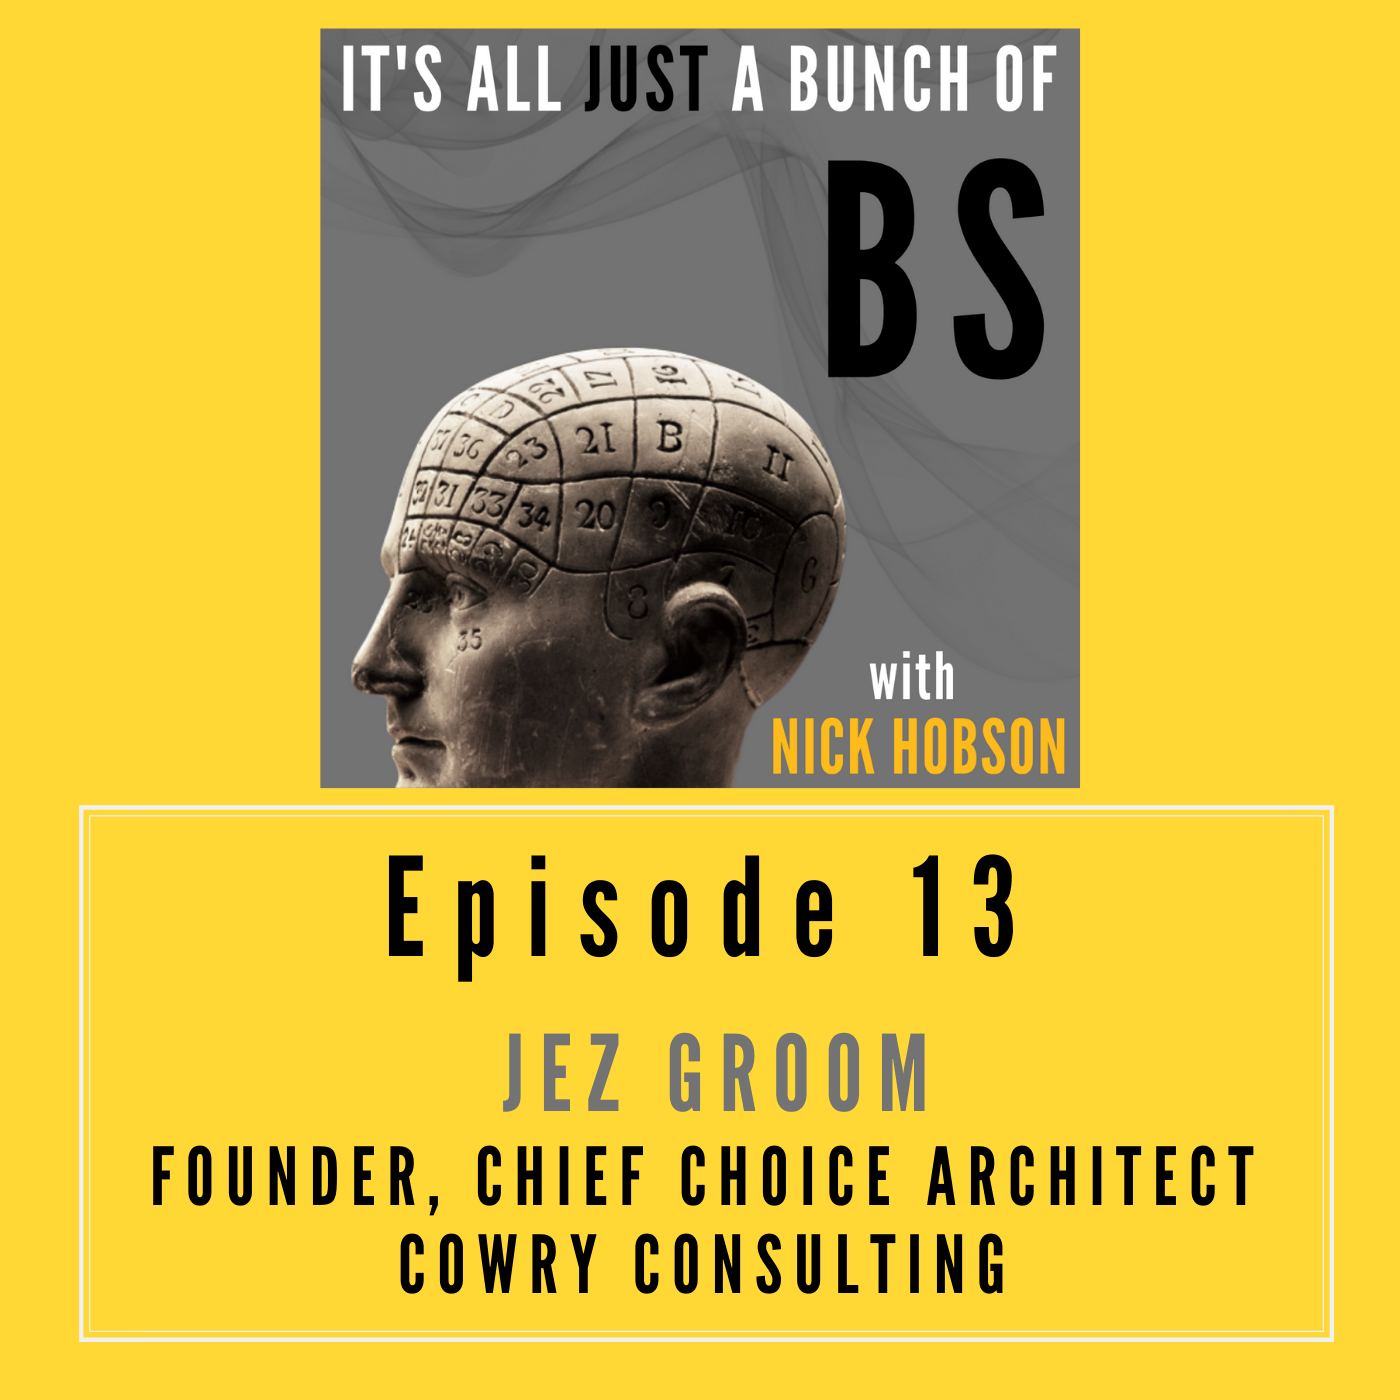 Episode 13 with JEZ GROOM: The Remarkable Ripple of Small Behavioral Tweaks to Make Big Change